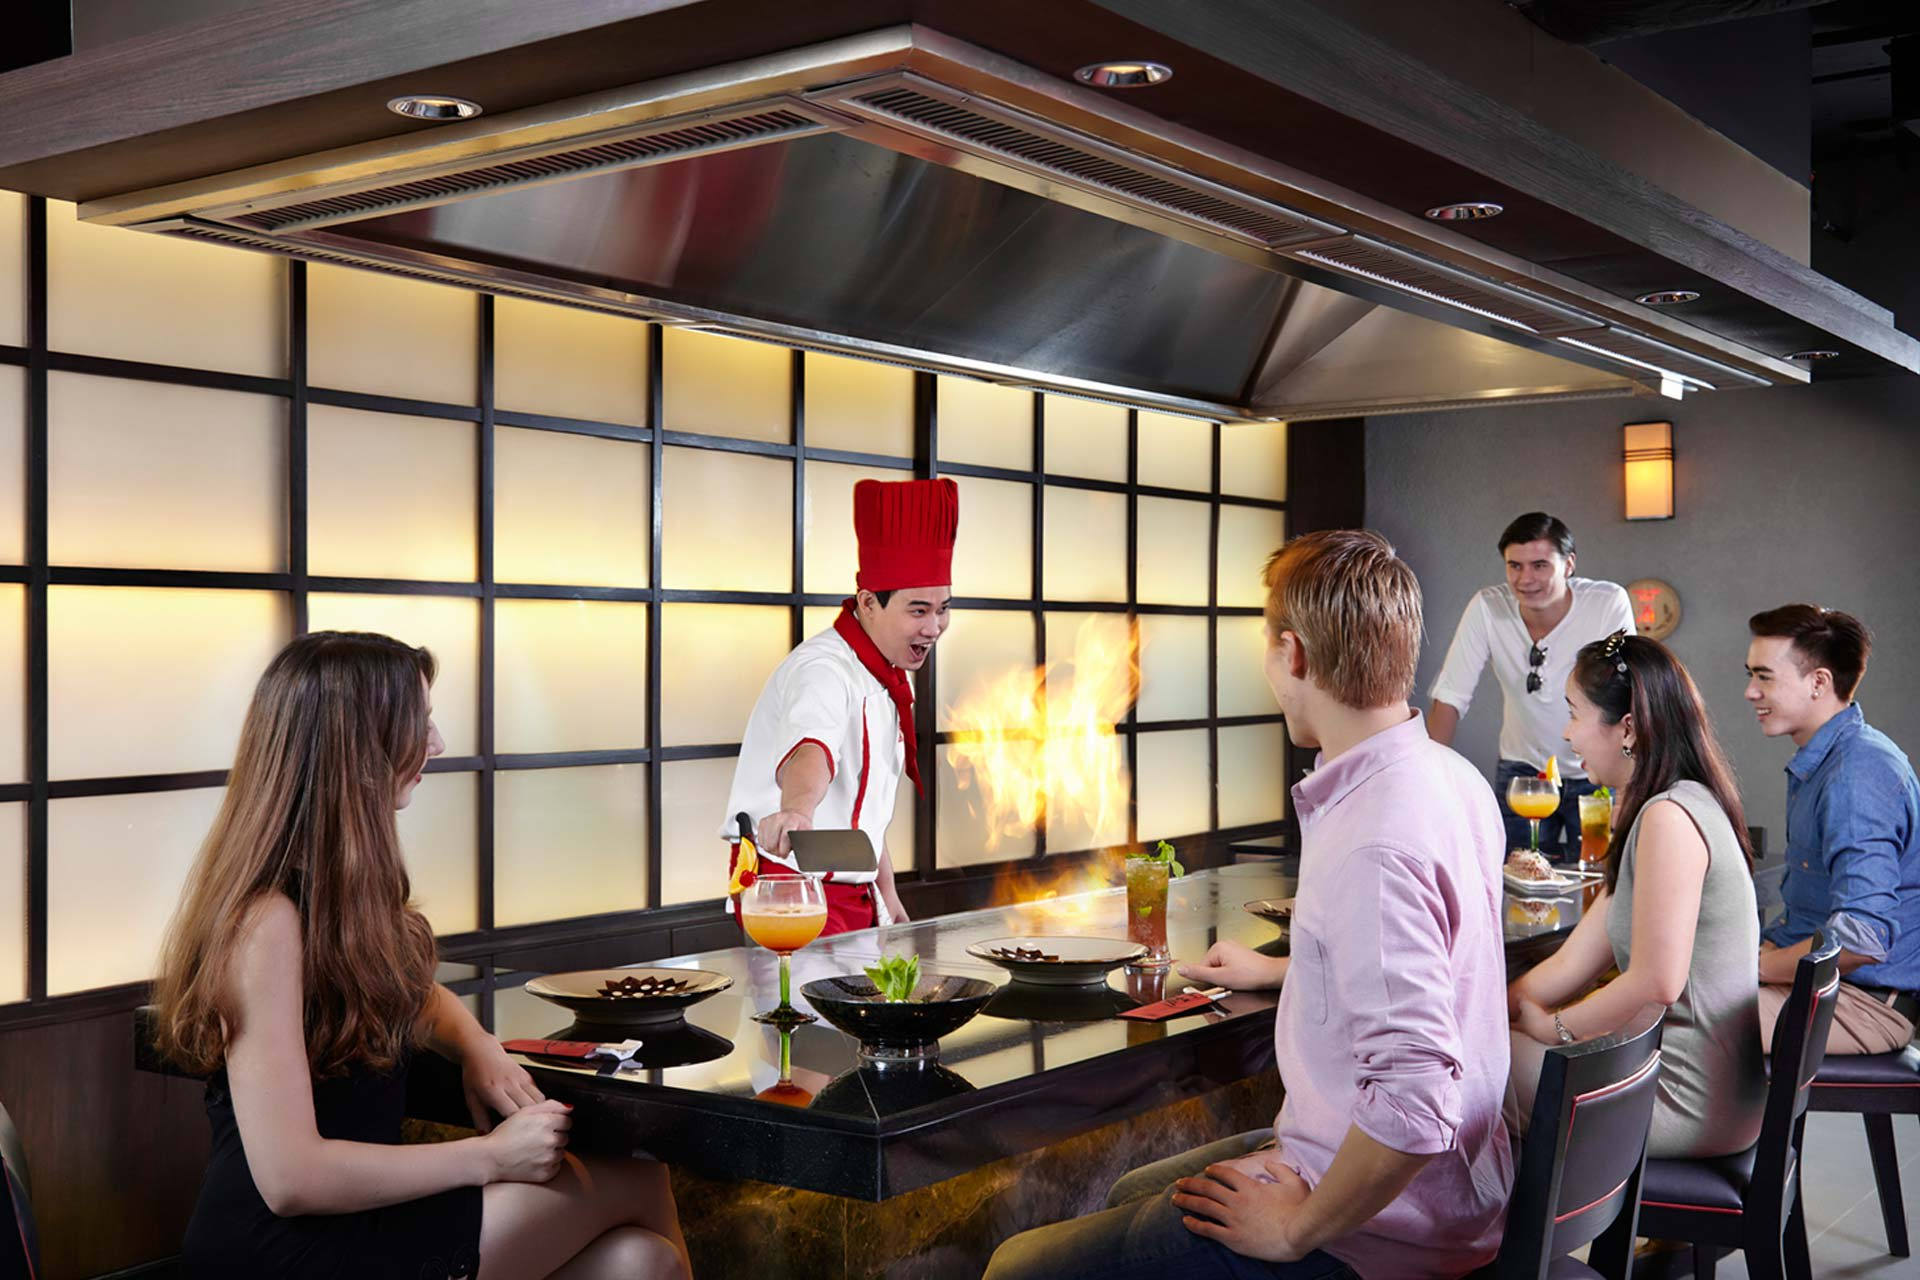 A chef cooking food at Benihana restaurant